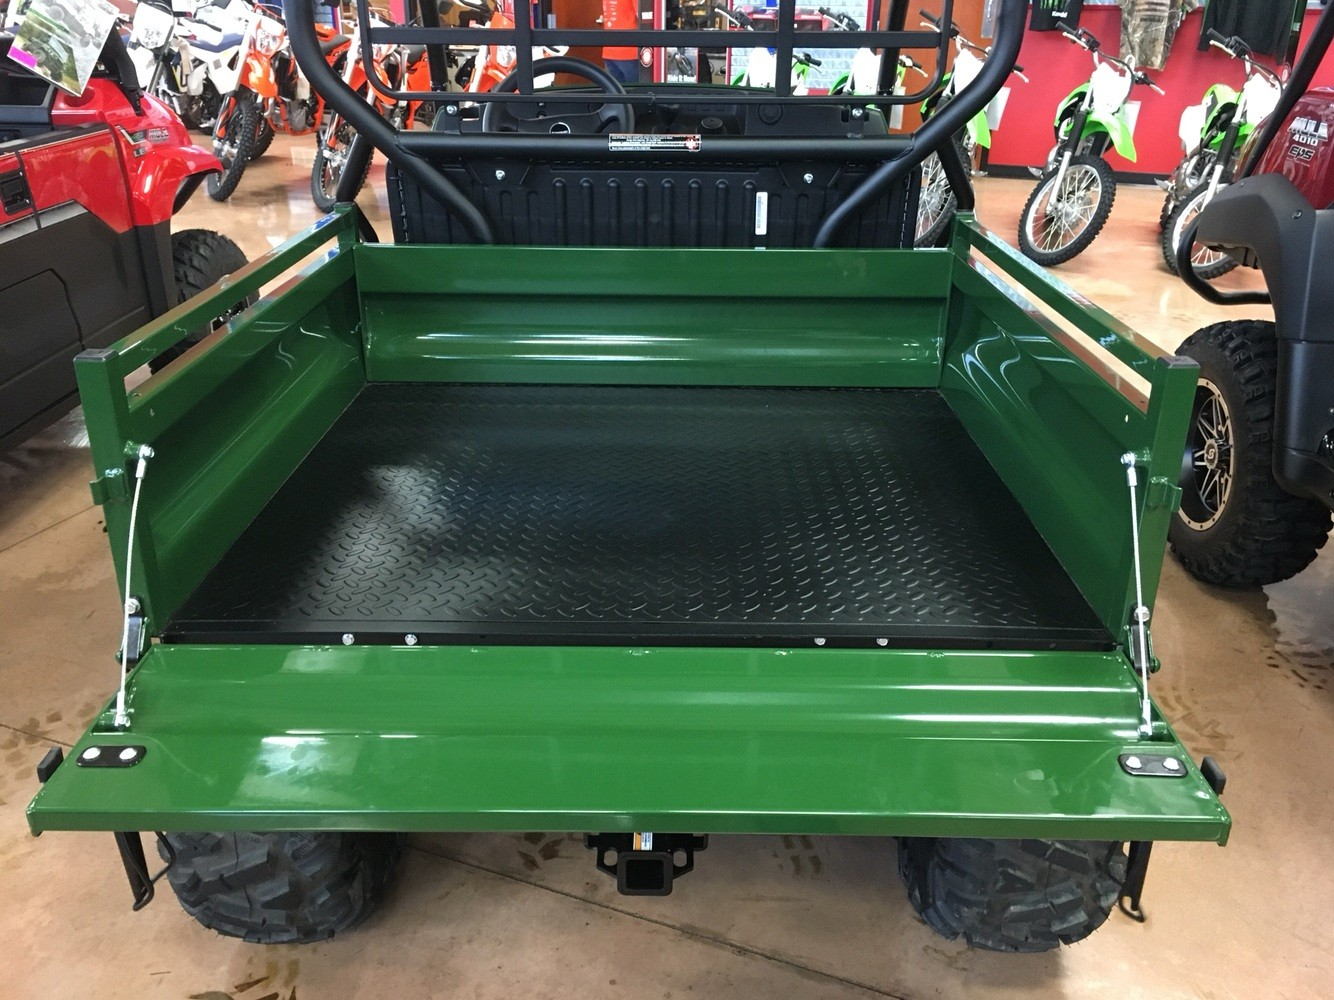 2019 Kawasaki Mule SX 4X4 in Evansville, Indiana - Photo 28